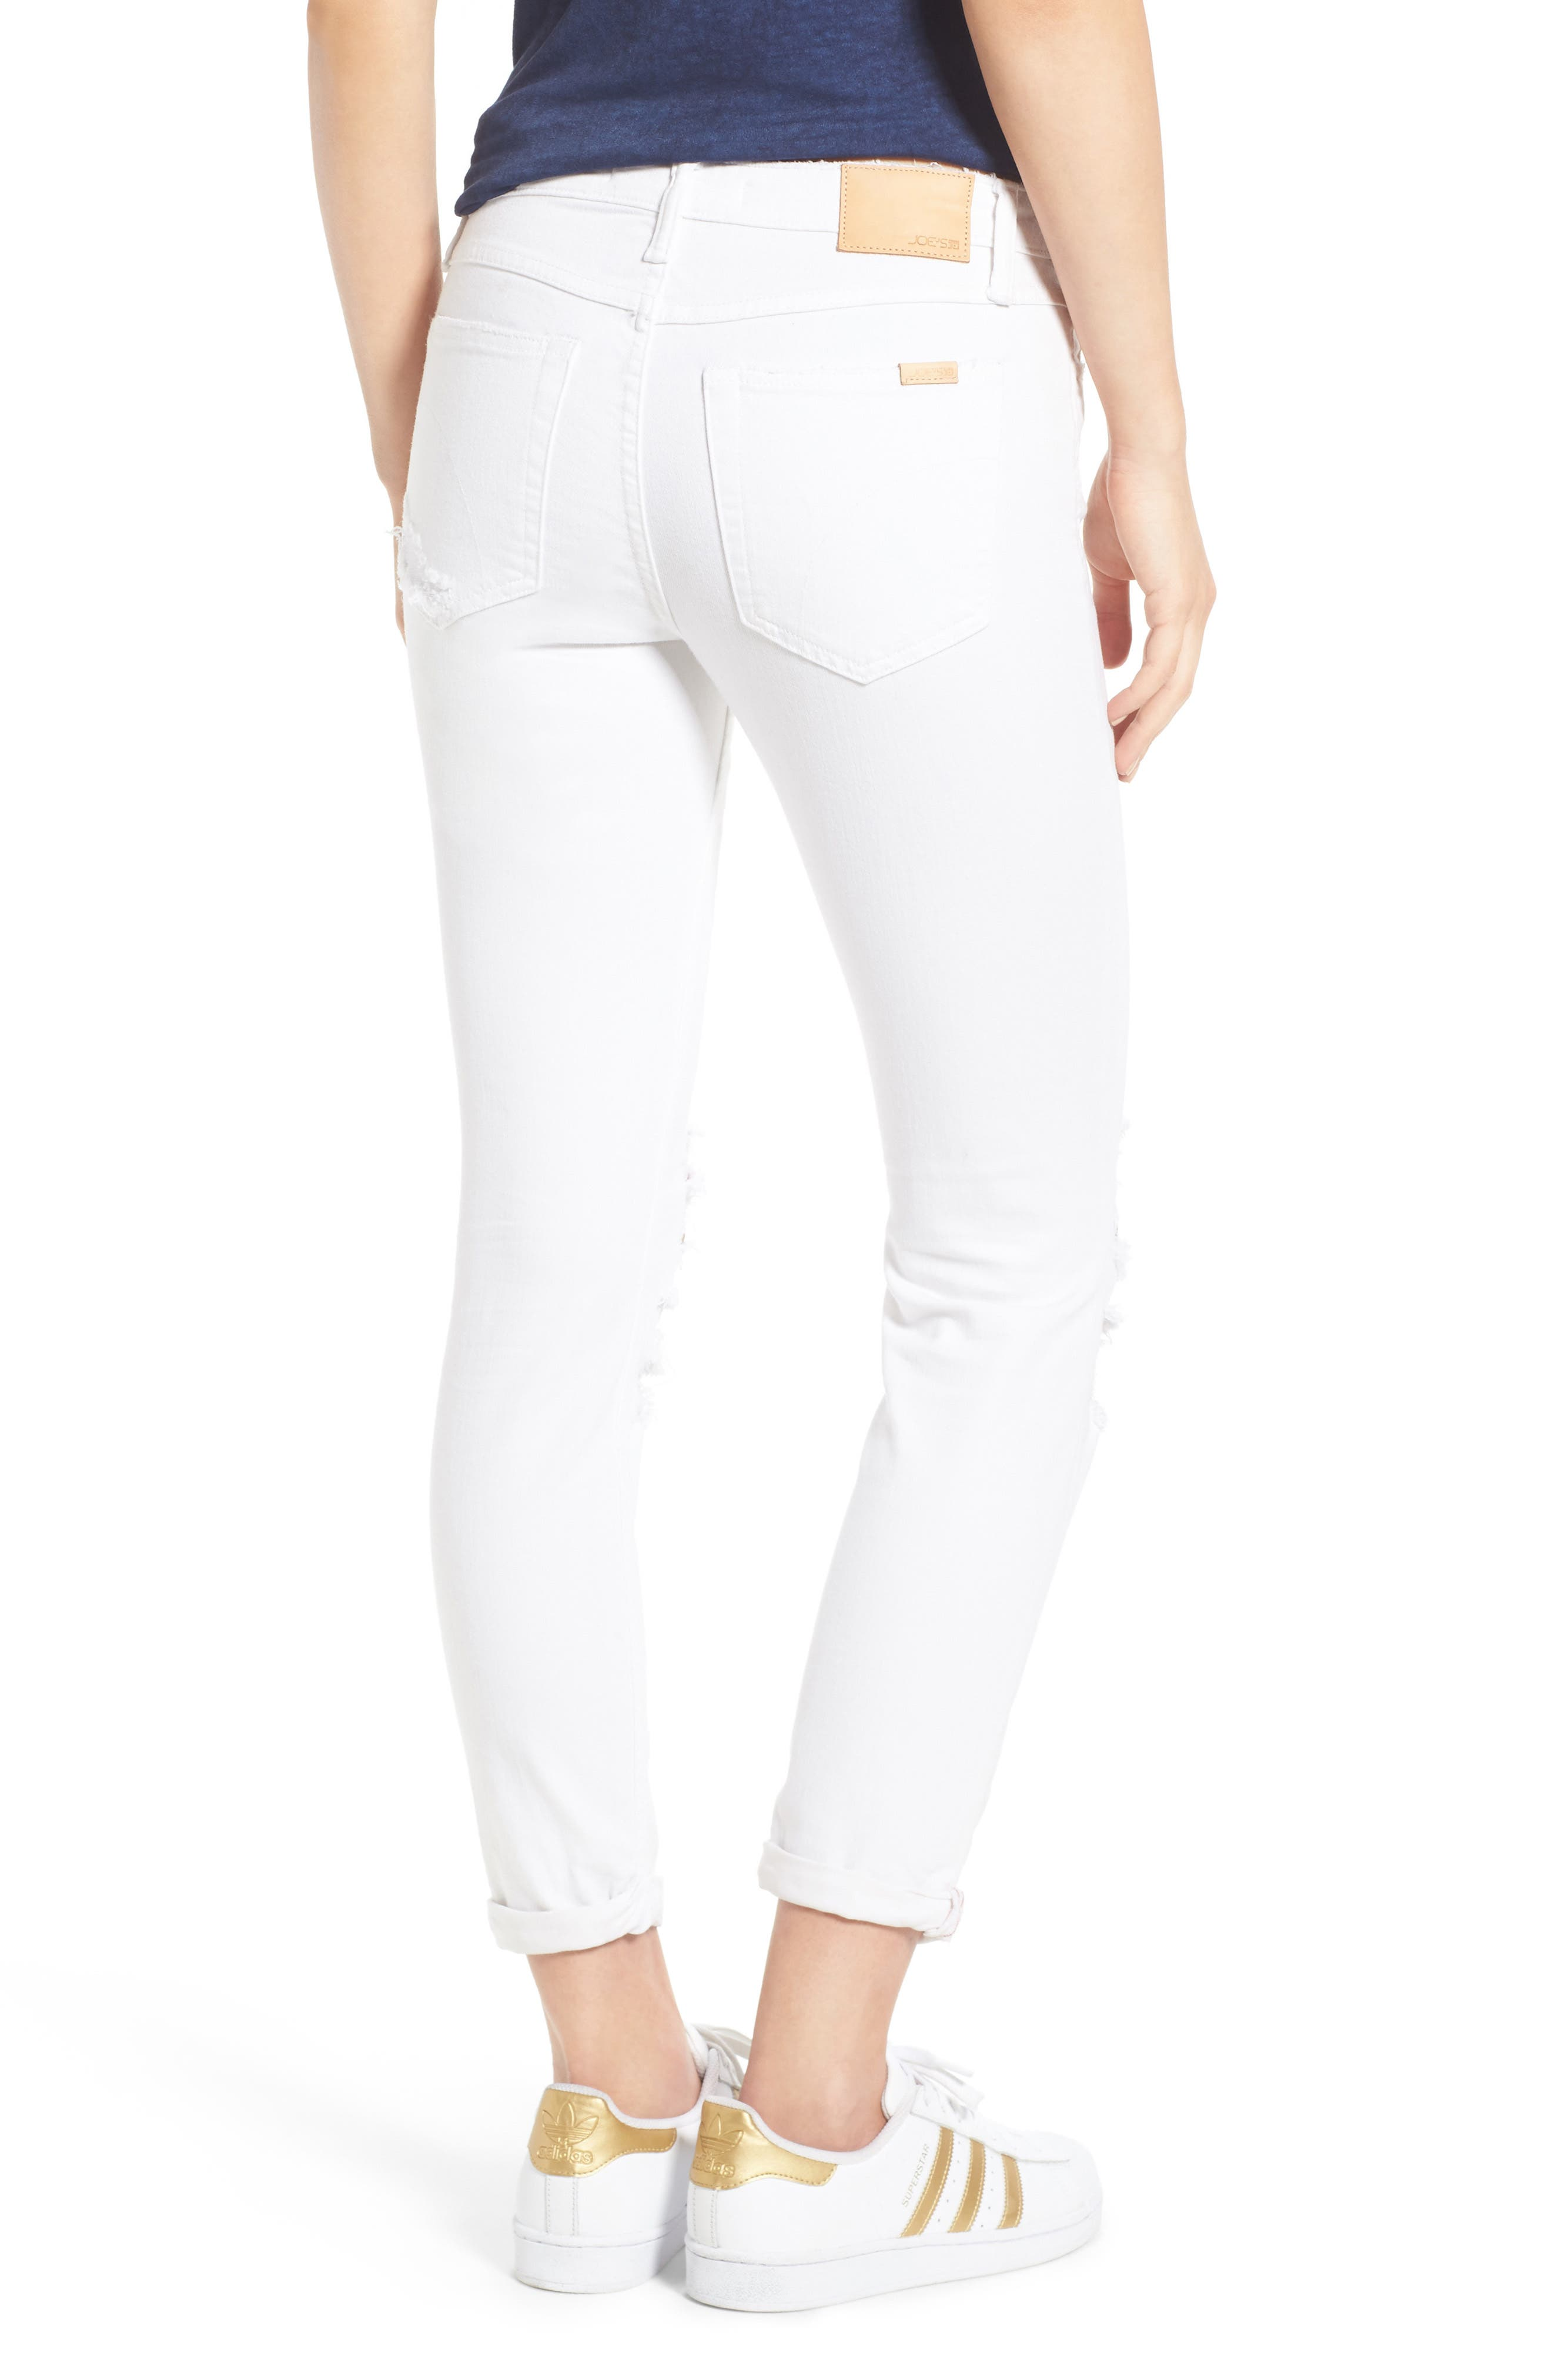 Andie Crop Skinny Jeans,                             Alternate thumbnail 2, color,                             Scottie